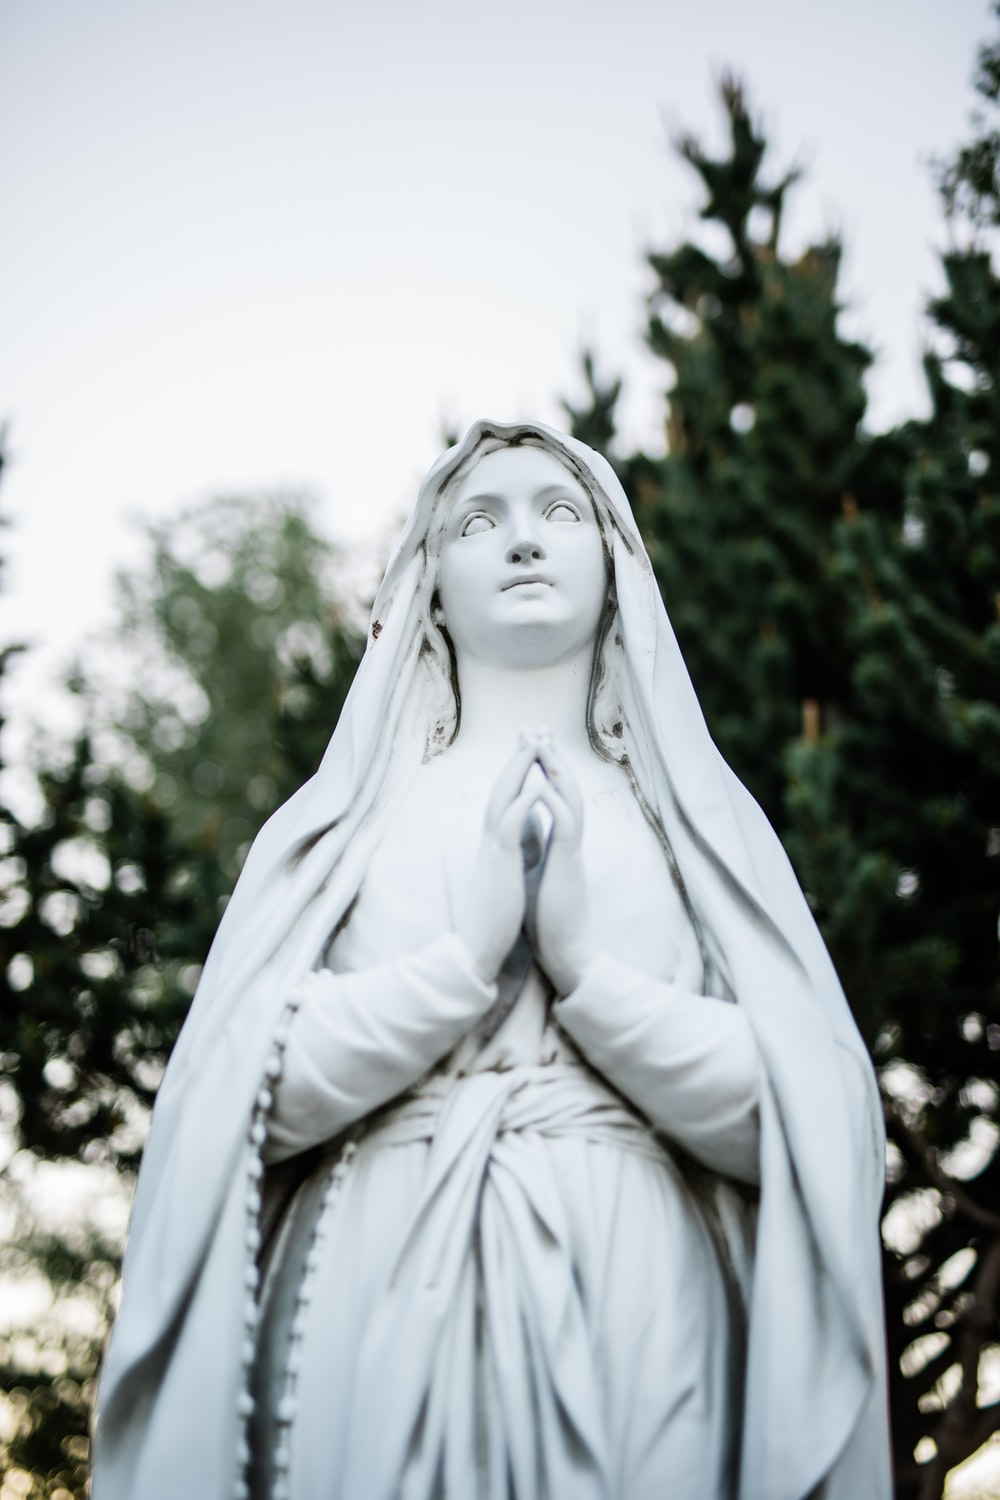 500 virgin mary pictures hd download free images on unsplash